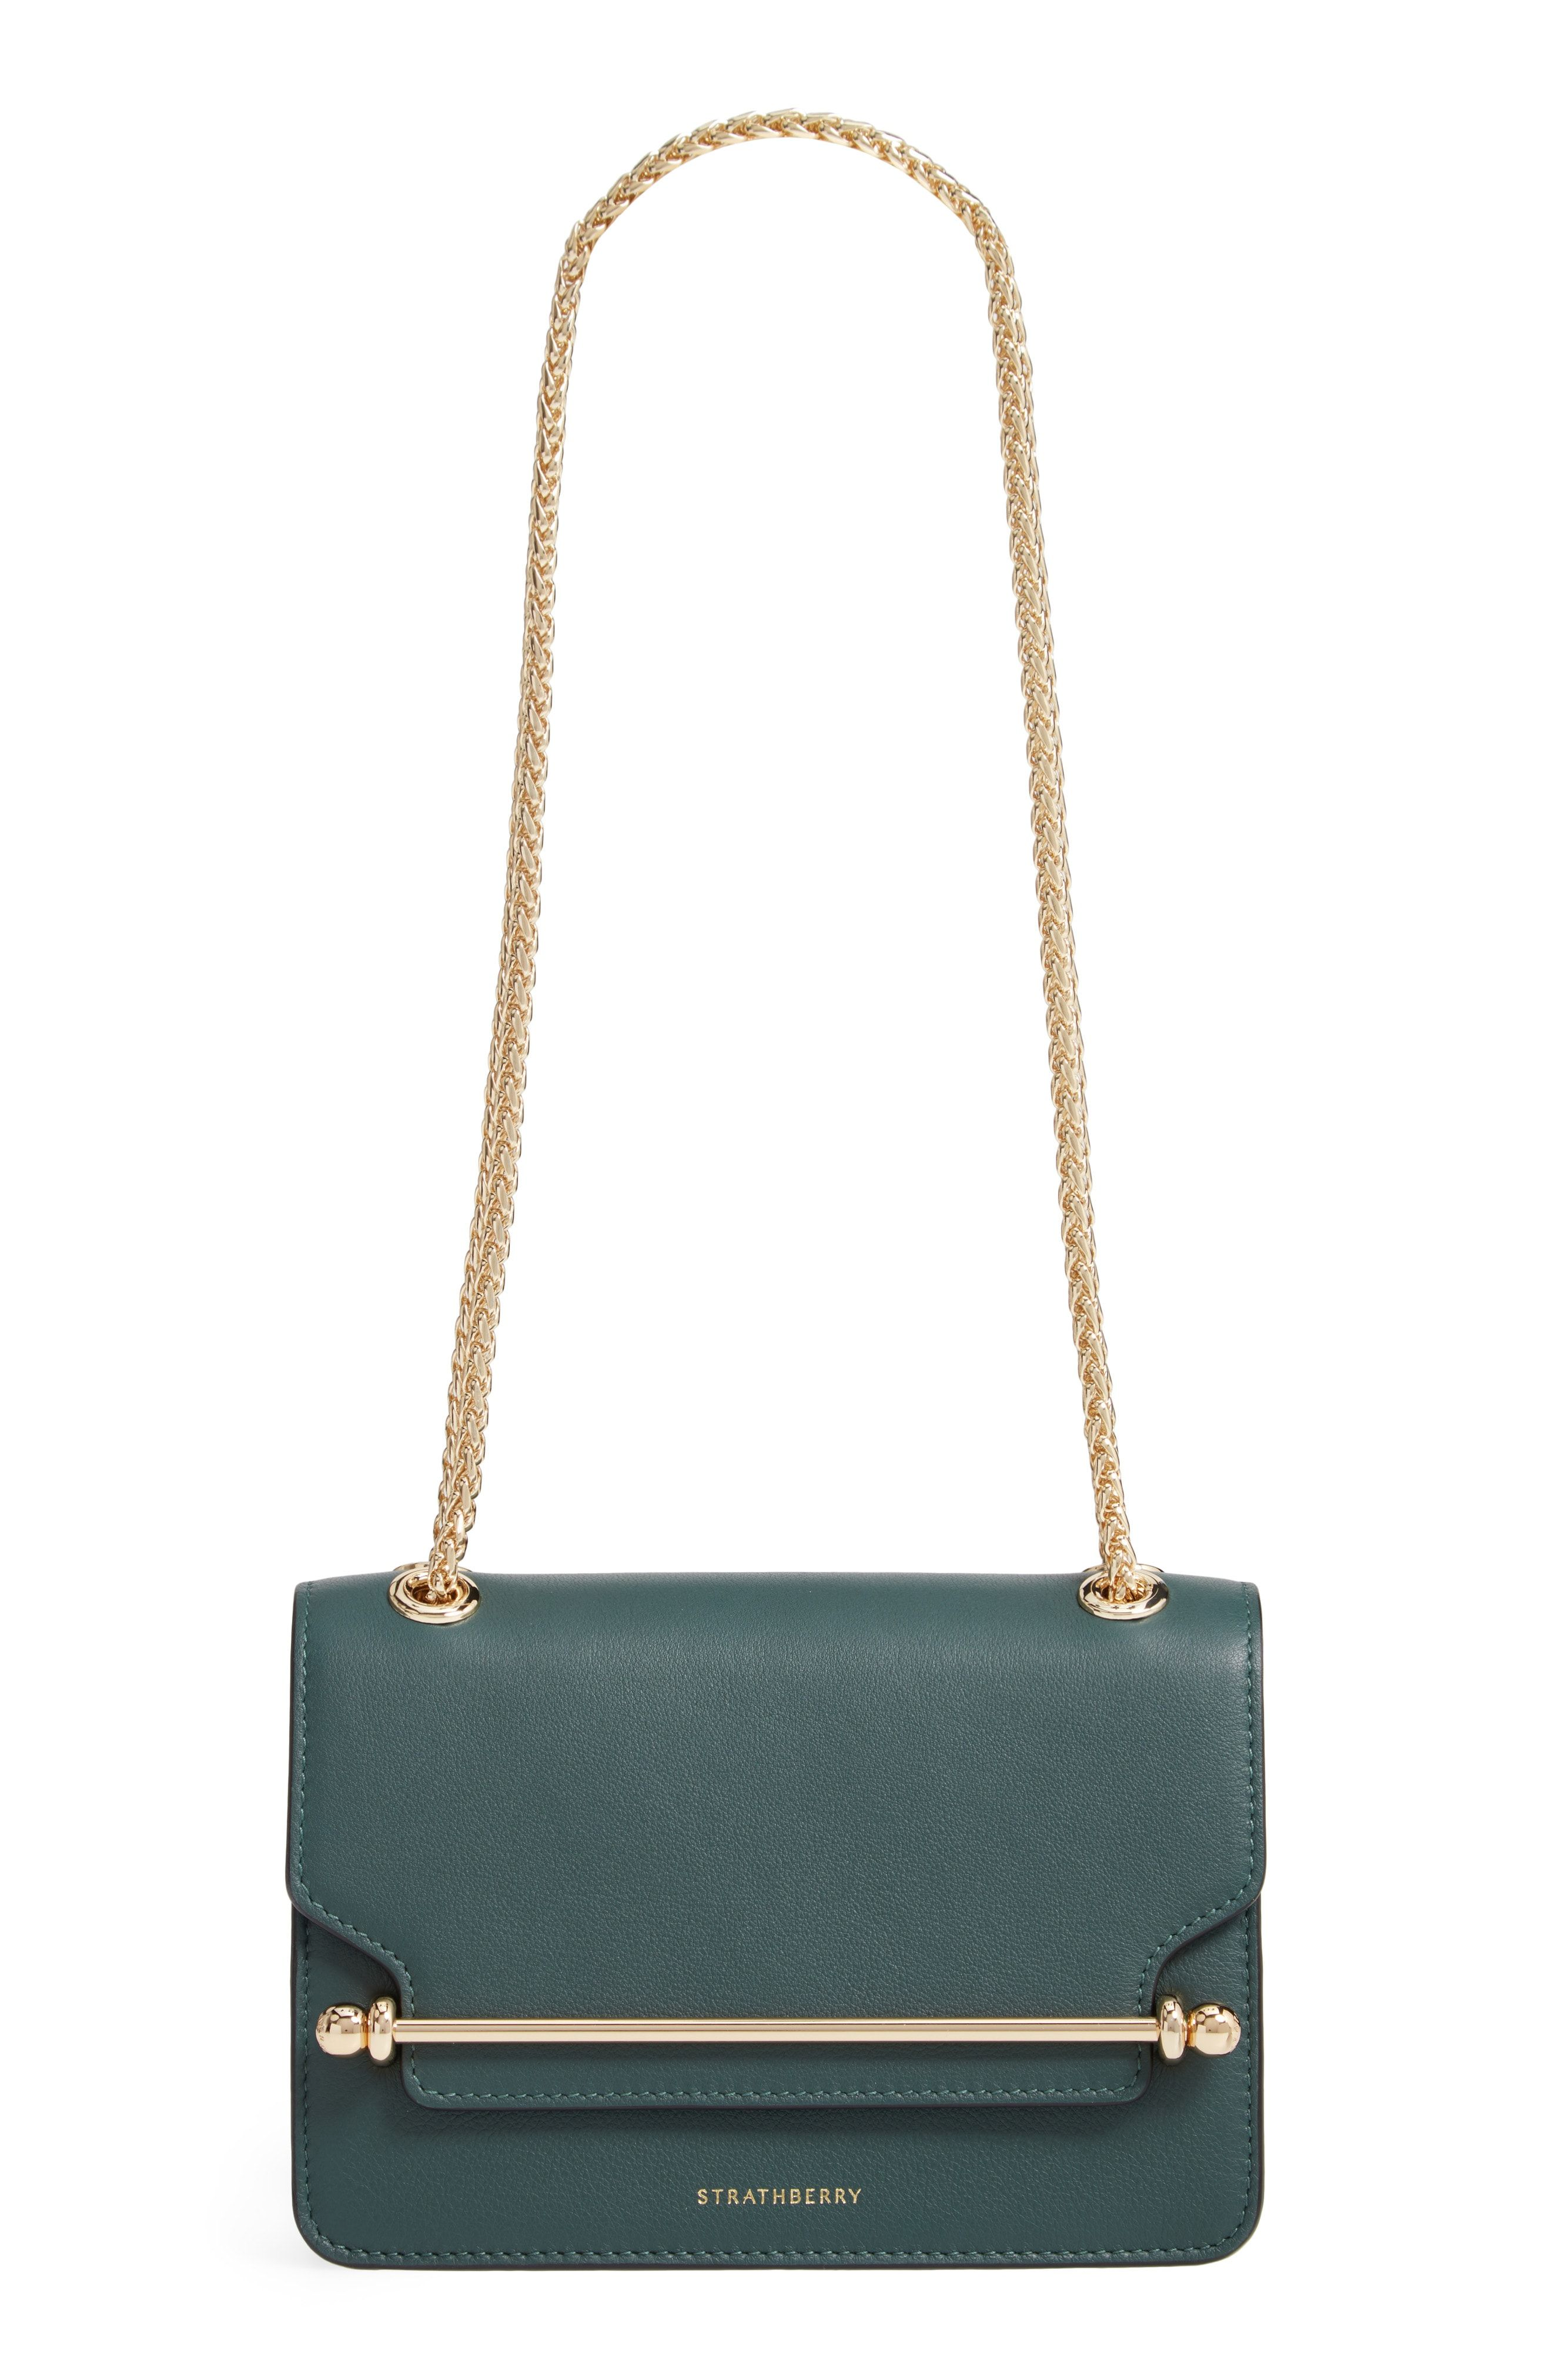 32412a88c3b5 STRATHBERRY MINI EAST WEST LEATHER CROSSBODY BAG - GREEN.  strathberry  bags